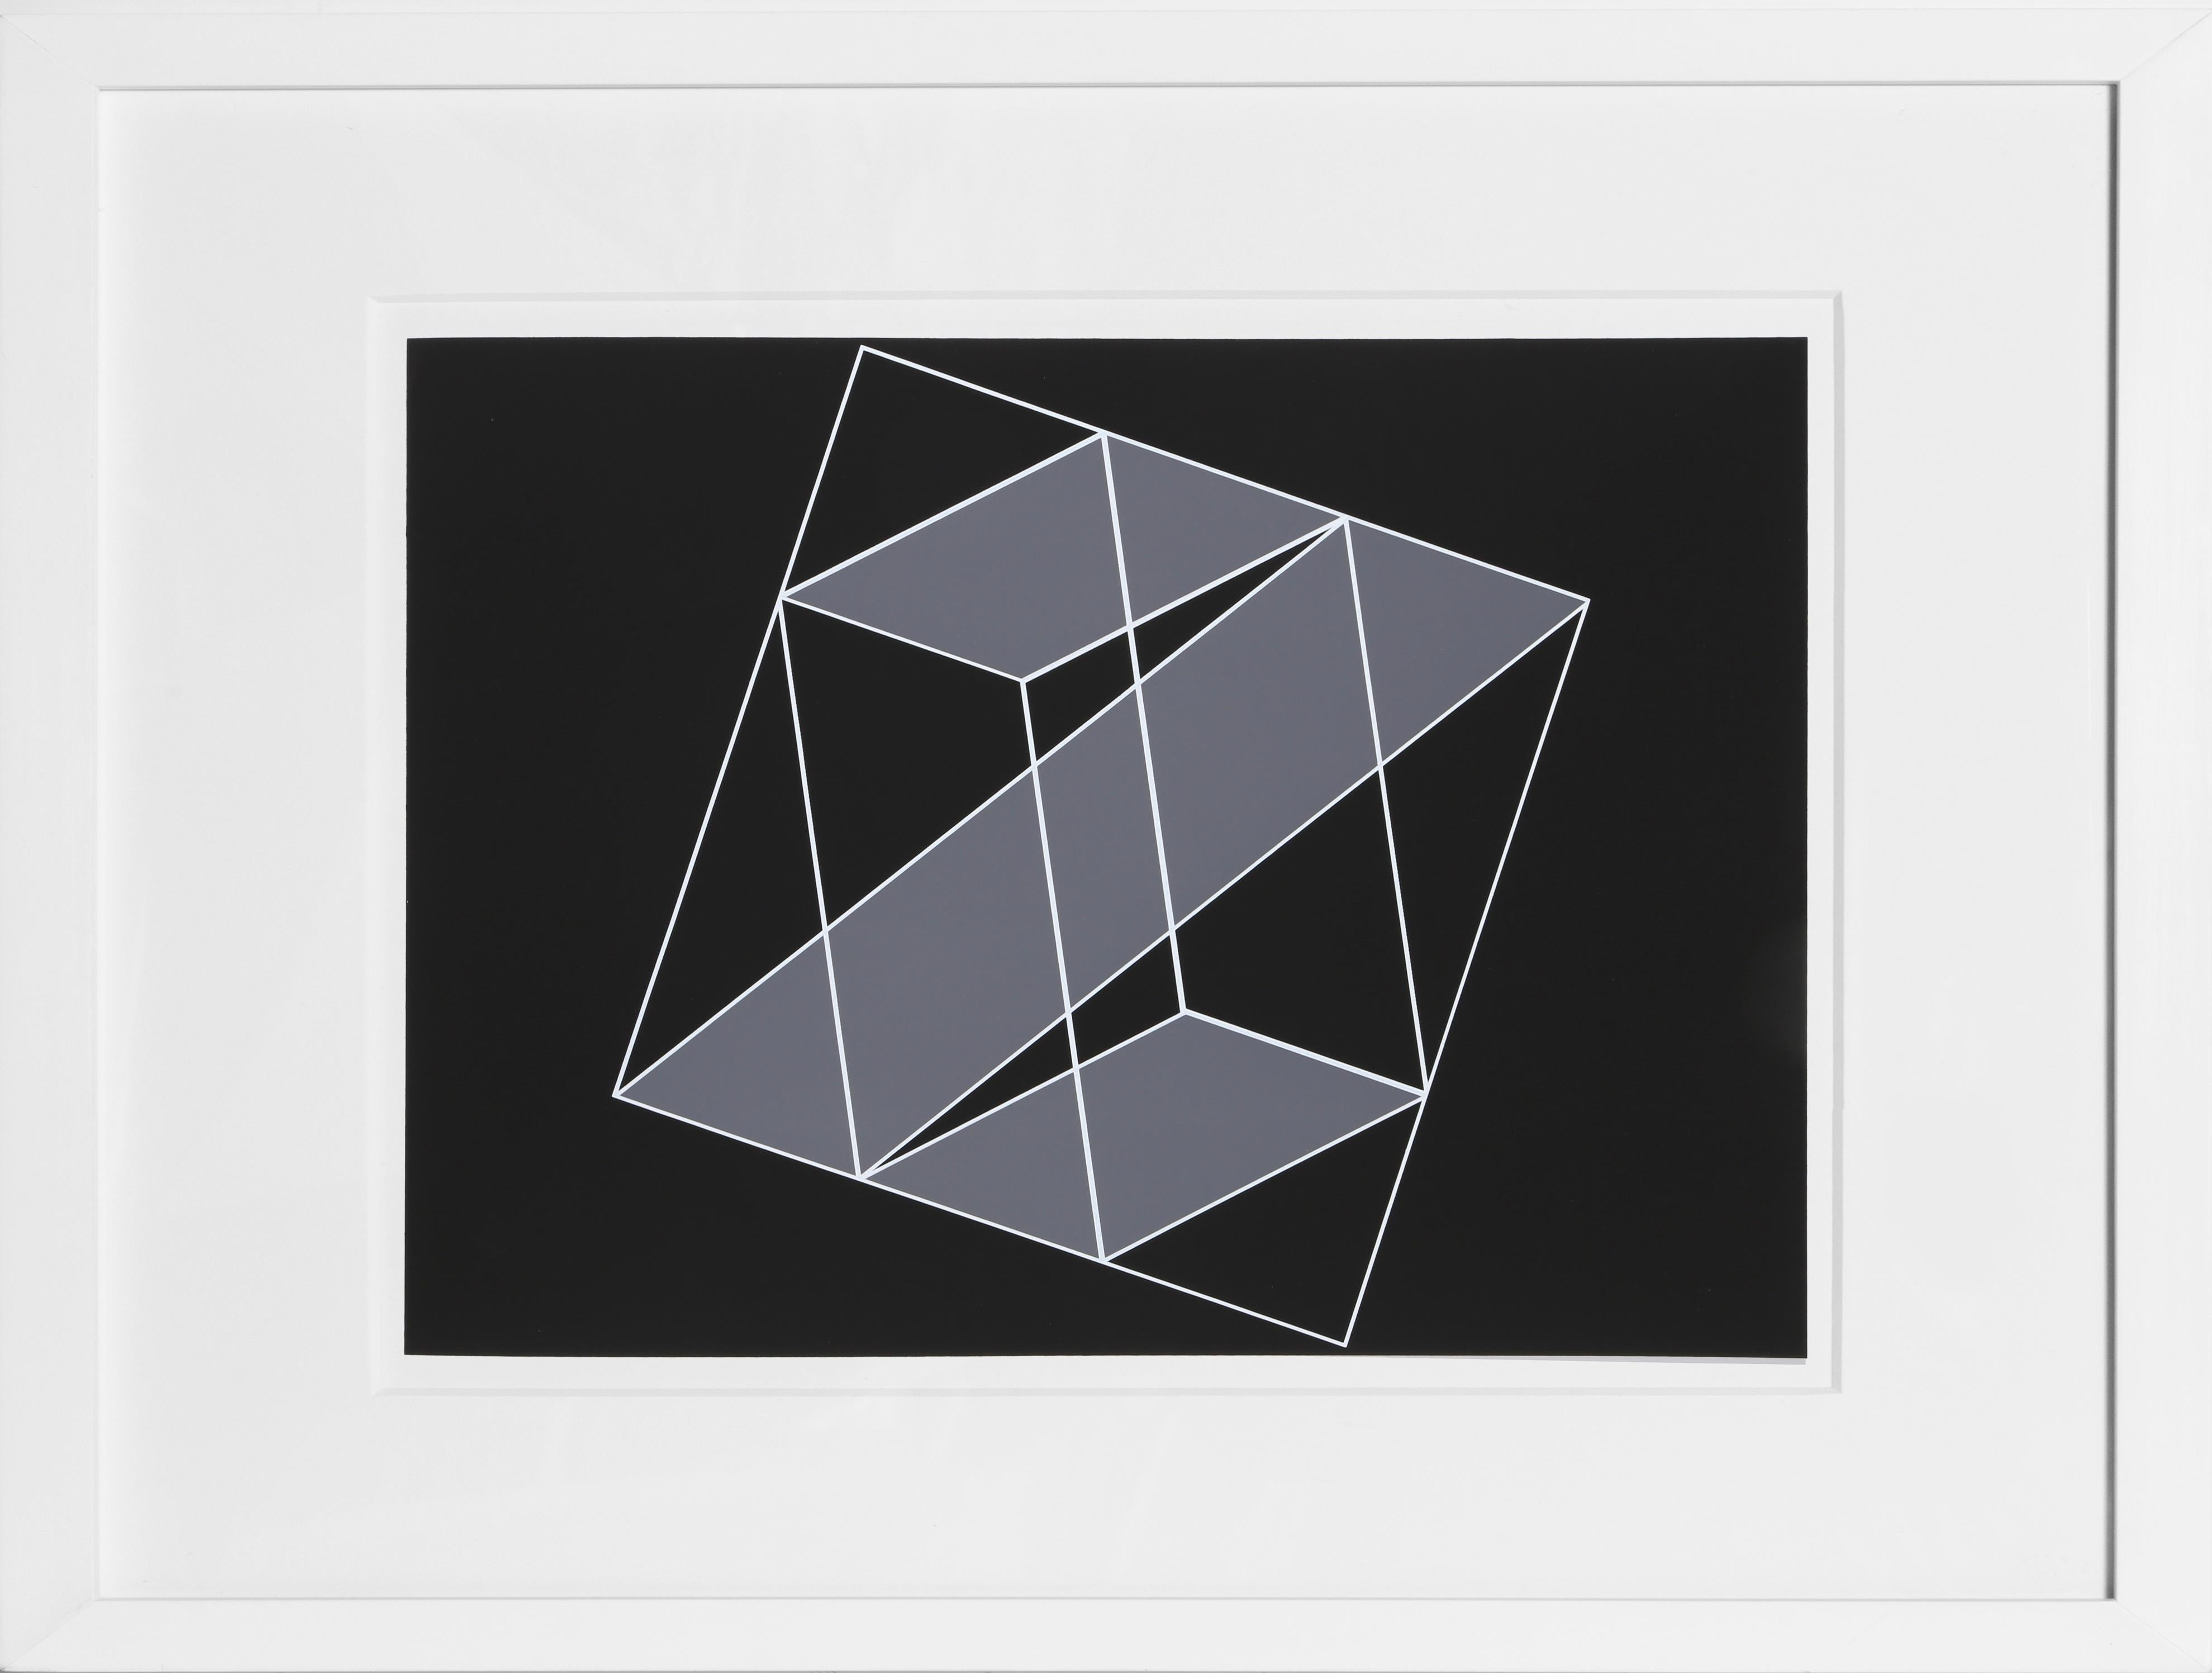 untitled 'Z' from Formulation: Articulation by Josef Albers